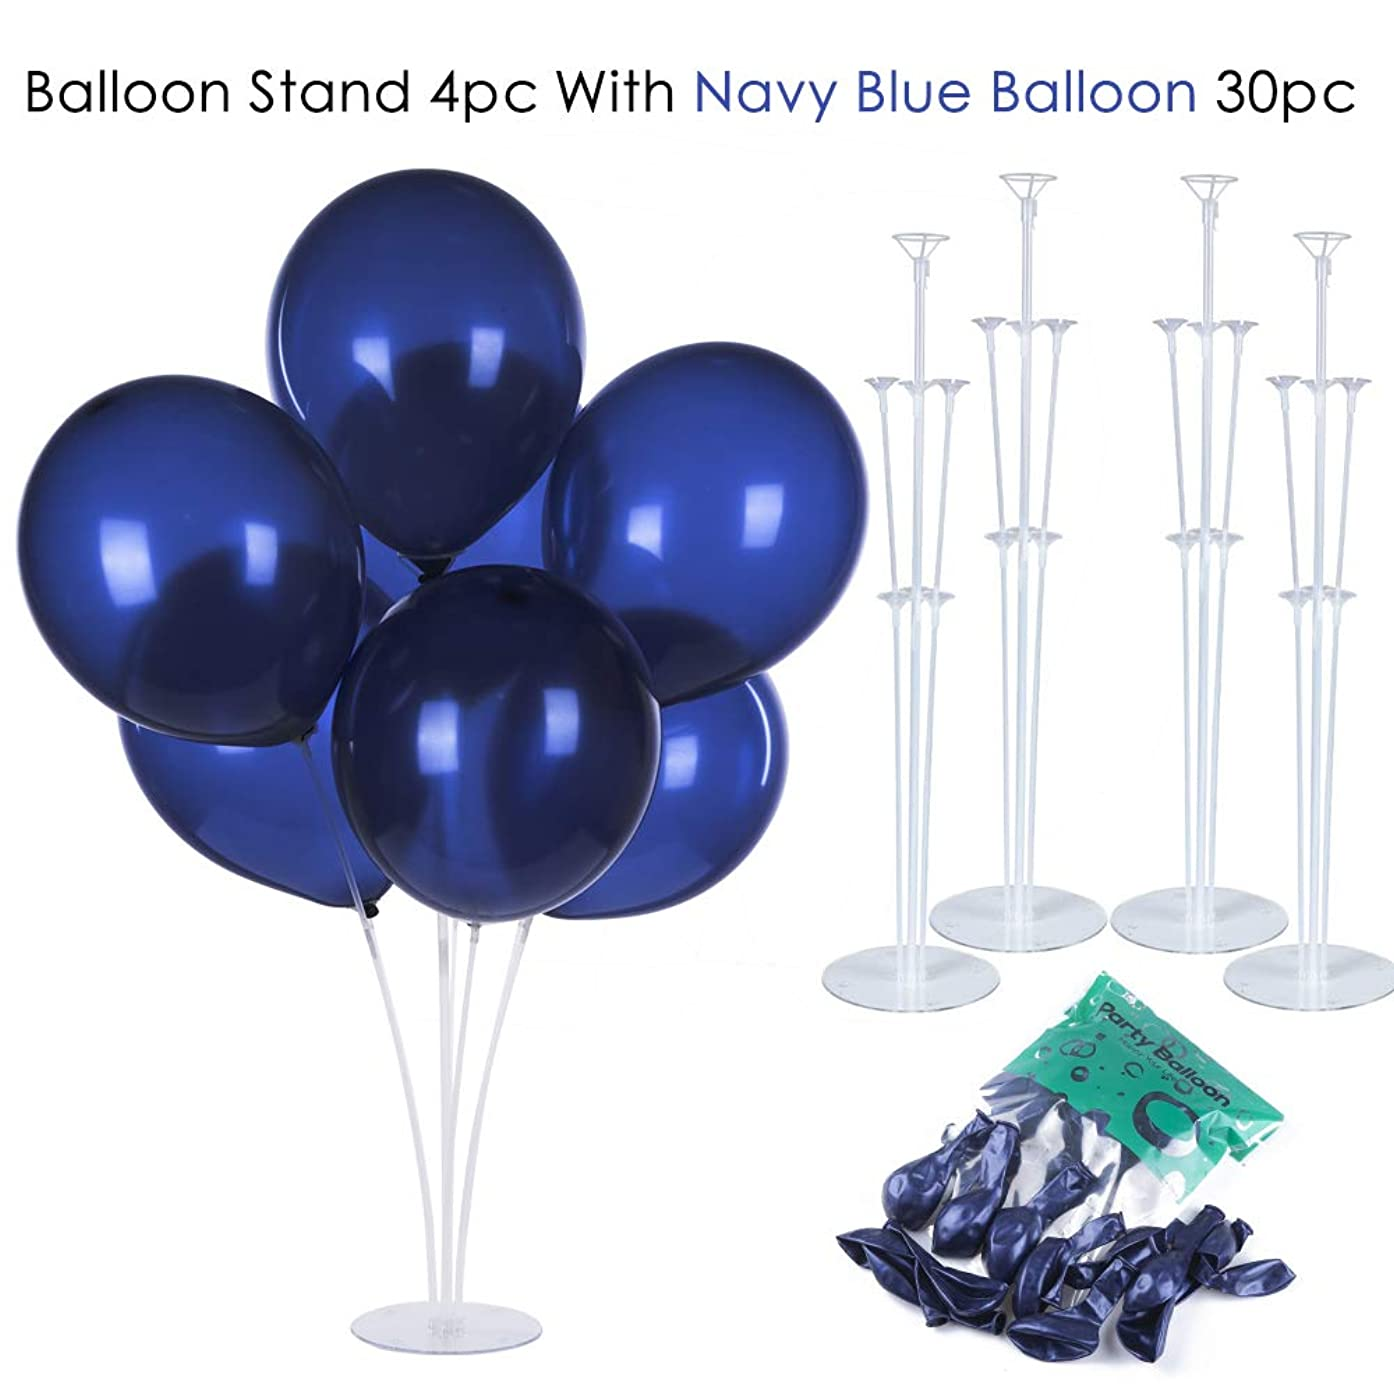 ZOOYOO Balloons Column Stand 4pcs Reusable Clear Balloon Holder with 30 Navy Blue Balloons, Table Balloon Stand Kit for Any Occasions Party Decorations